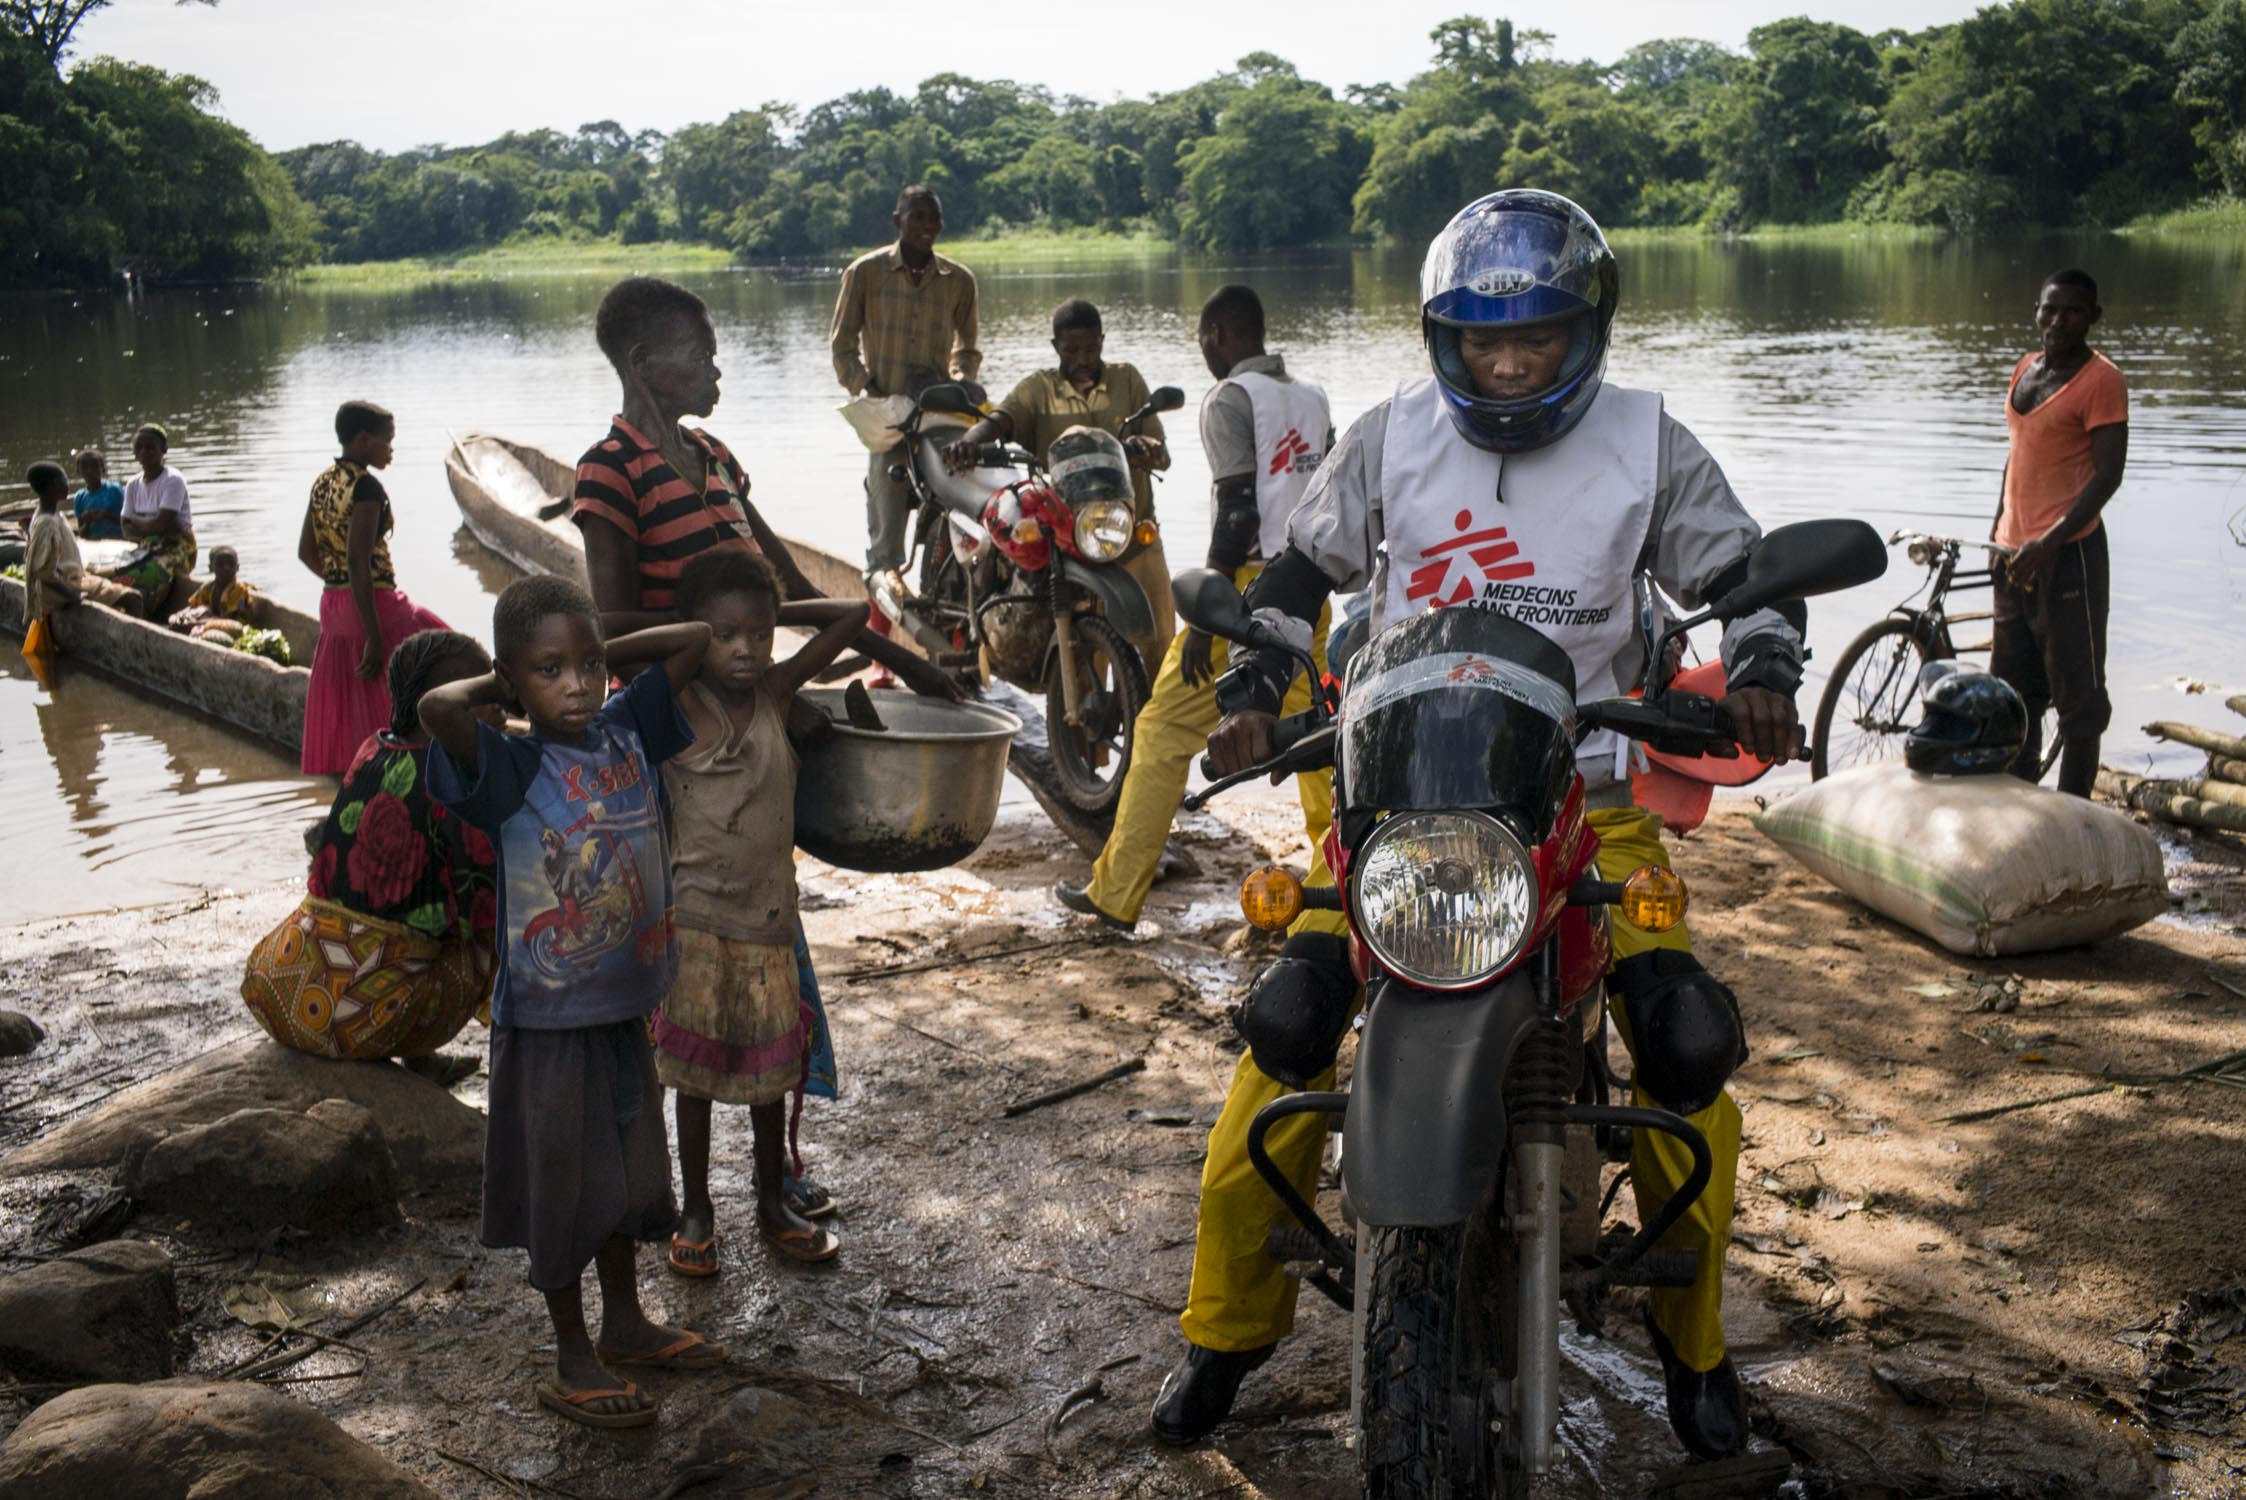 MSF drivers disembark their motorcycles from the local  pirogues  (traditional canoes) used to cross a river on their journey to a health center in Sombe, a village in the remote Bas-Uele province of Democratic Republic of the Congo (DRC). MSF arrived to the area to carry out a five-day measles vaccination campaign in response to a measles epidemic. MSF had named measles among the top five epidemics that could erupt or worsen in 2016. DRC has the fifth highest under-five mortality rate in the world. An estimated 465,000 children in DRC die each year of preventable diseases. Bas-Uele province, Democratic Republic of the Congo. May 28, 2016